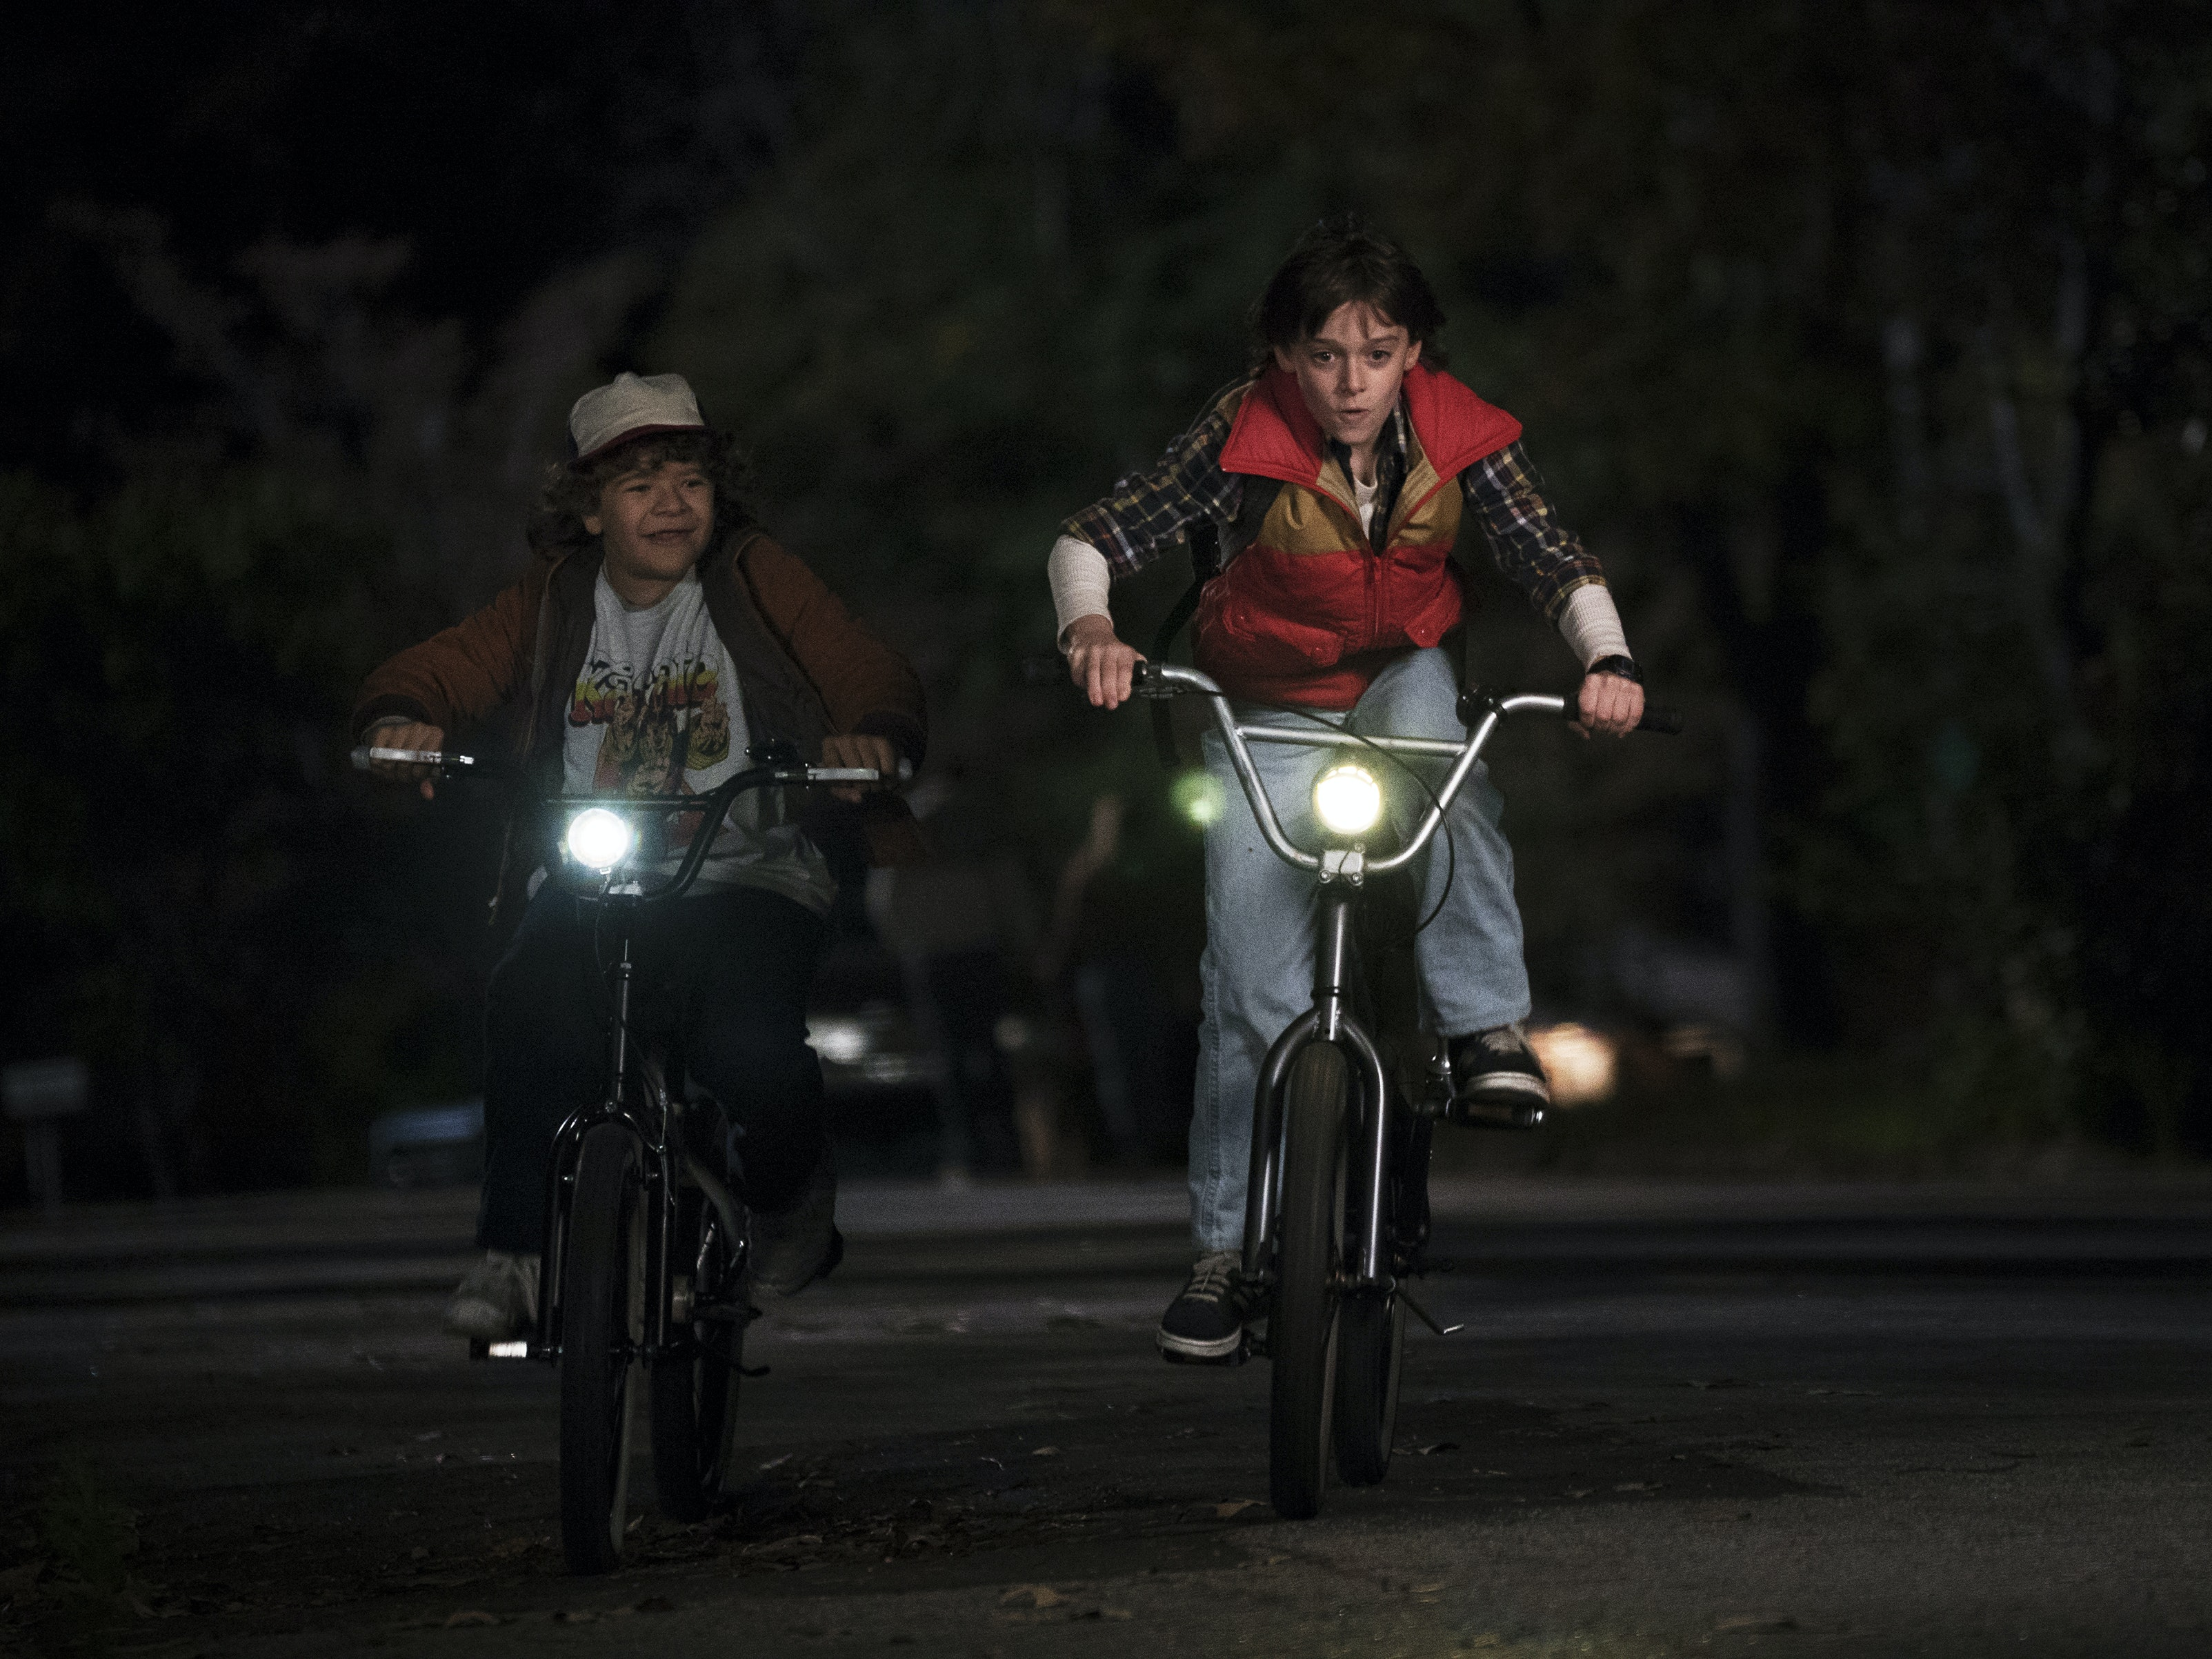 BMX Bikes as Symbols of Childhood Freedom on 'Stranger Things'